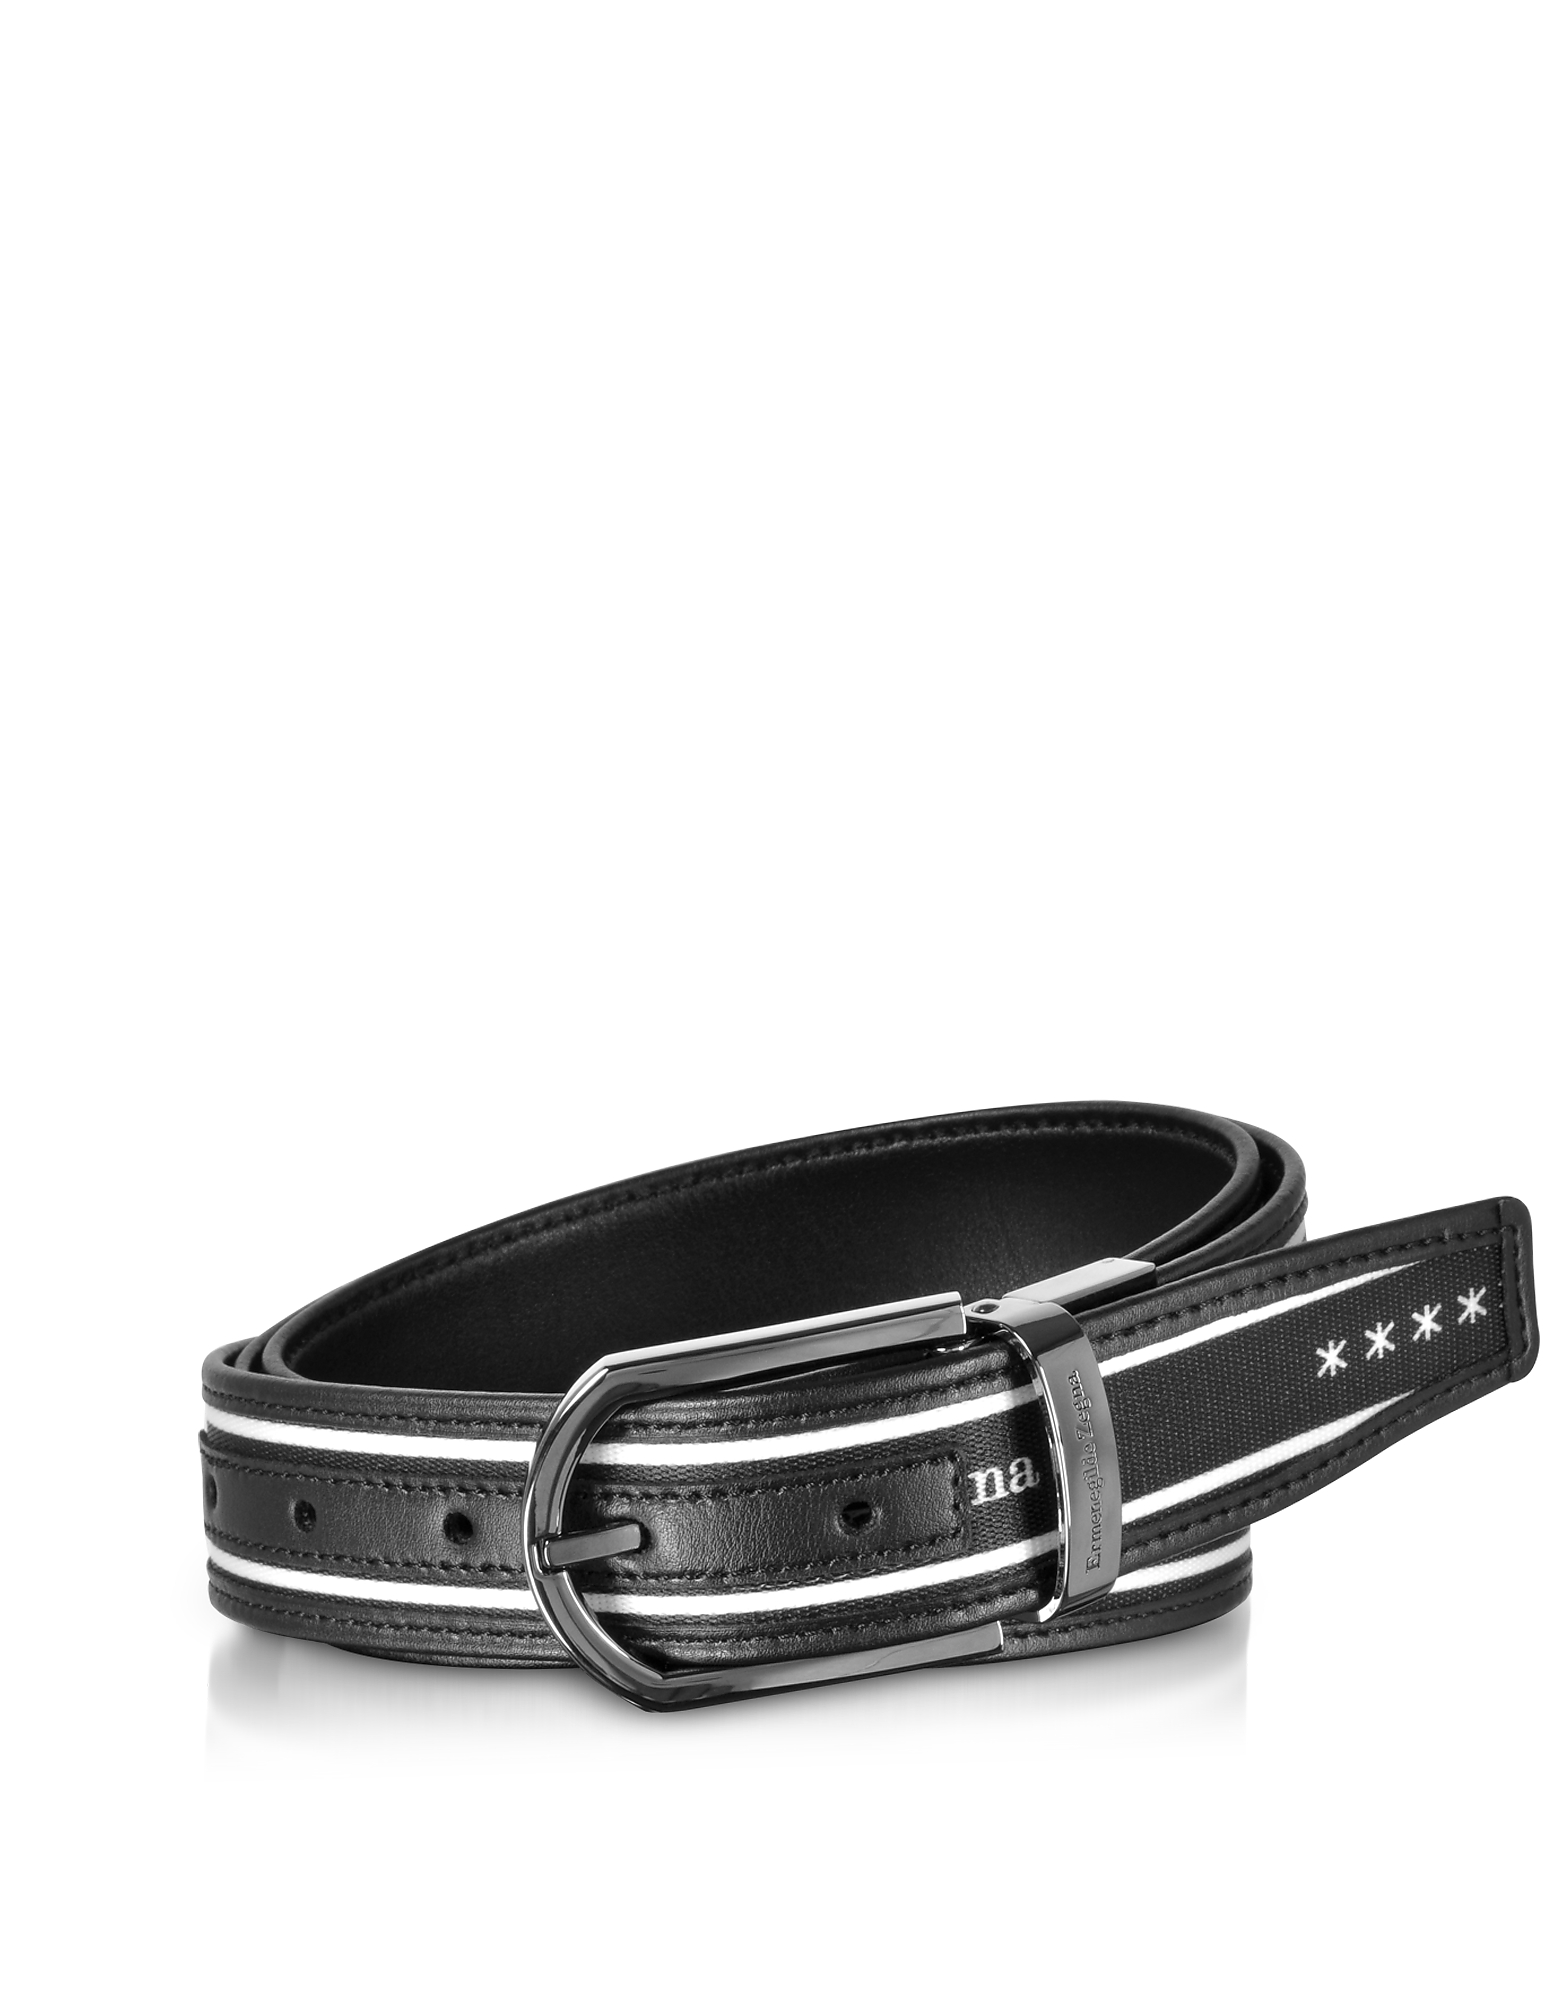 Signature Canvas and Leather Reversible Men's Belt